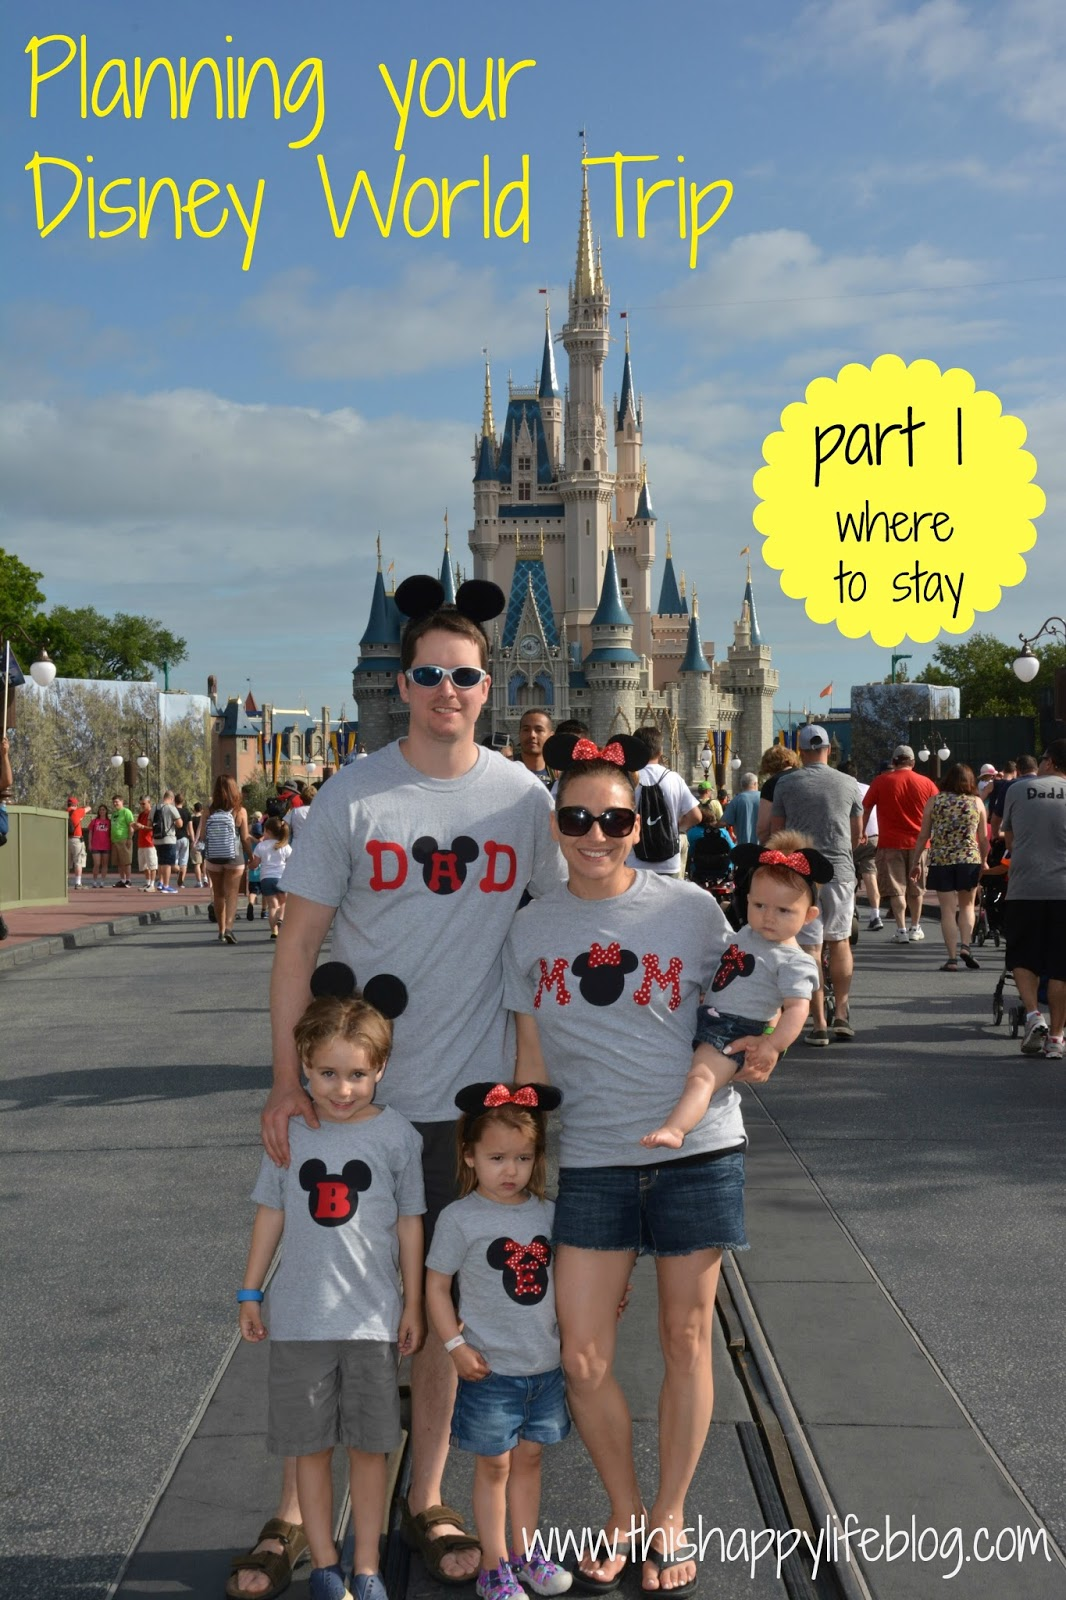 This Happy Life: Planning Your Disney World Trip